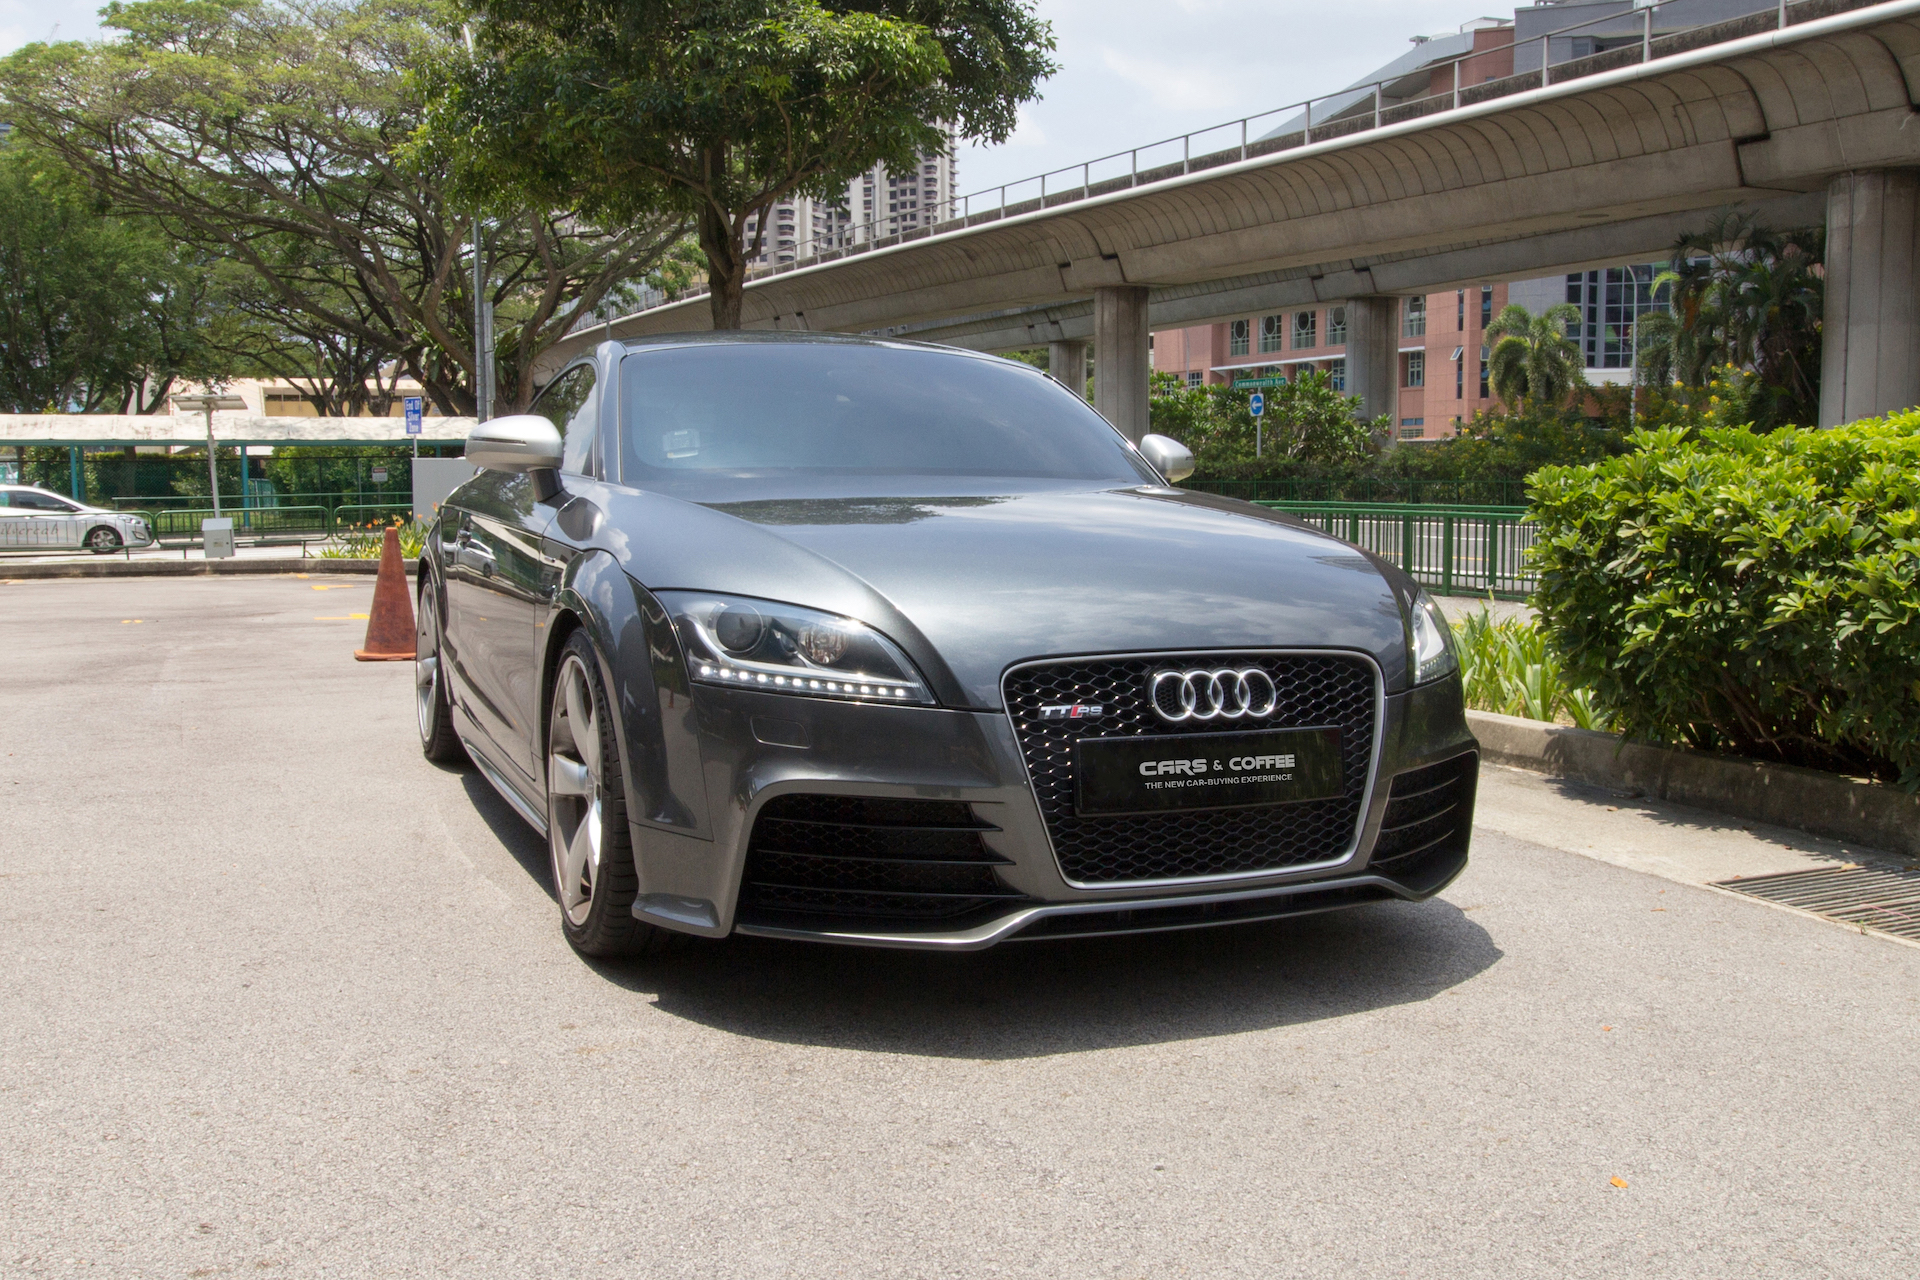 Certified Pre-Owned Audi TTRS Coupe 2.5M TFSI Quattro | Cars and Coffee Singapore